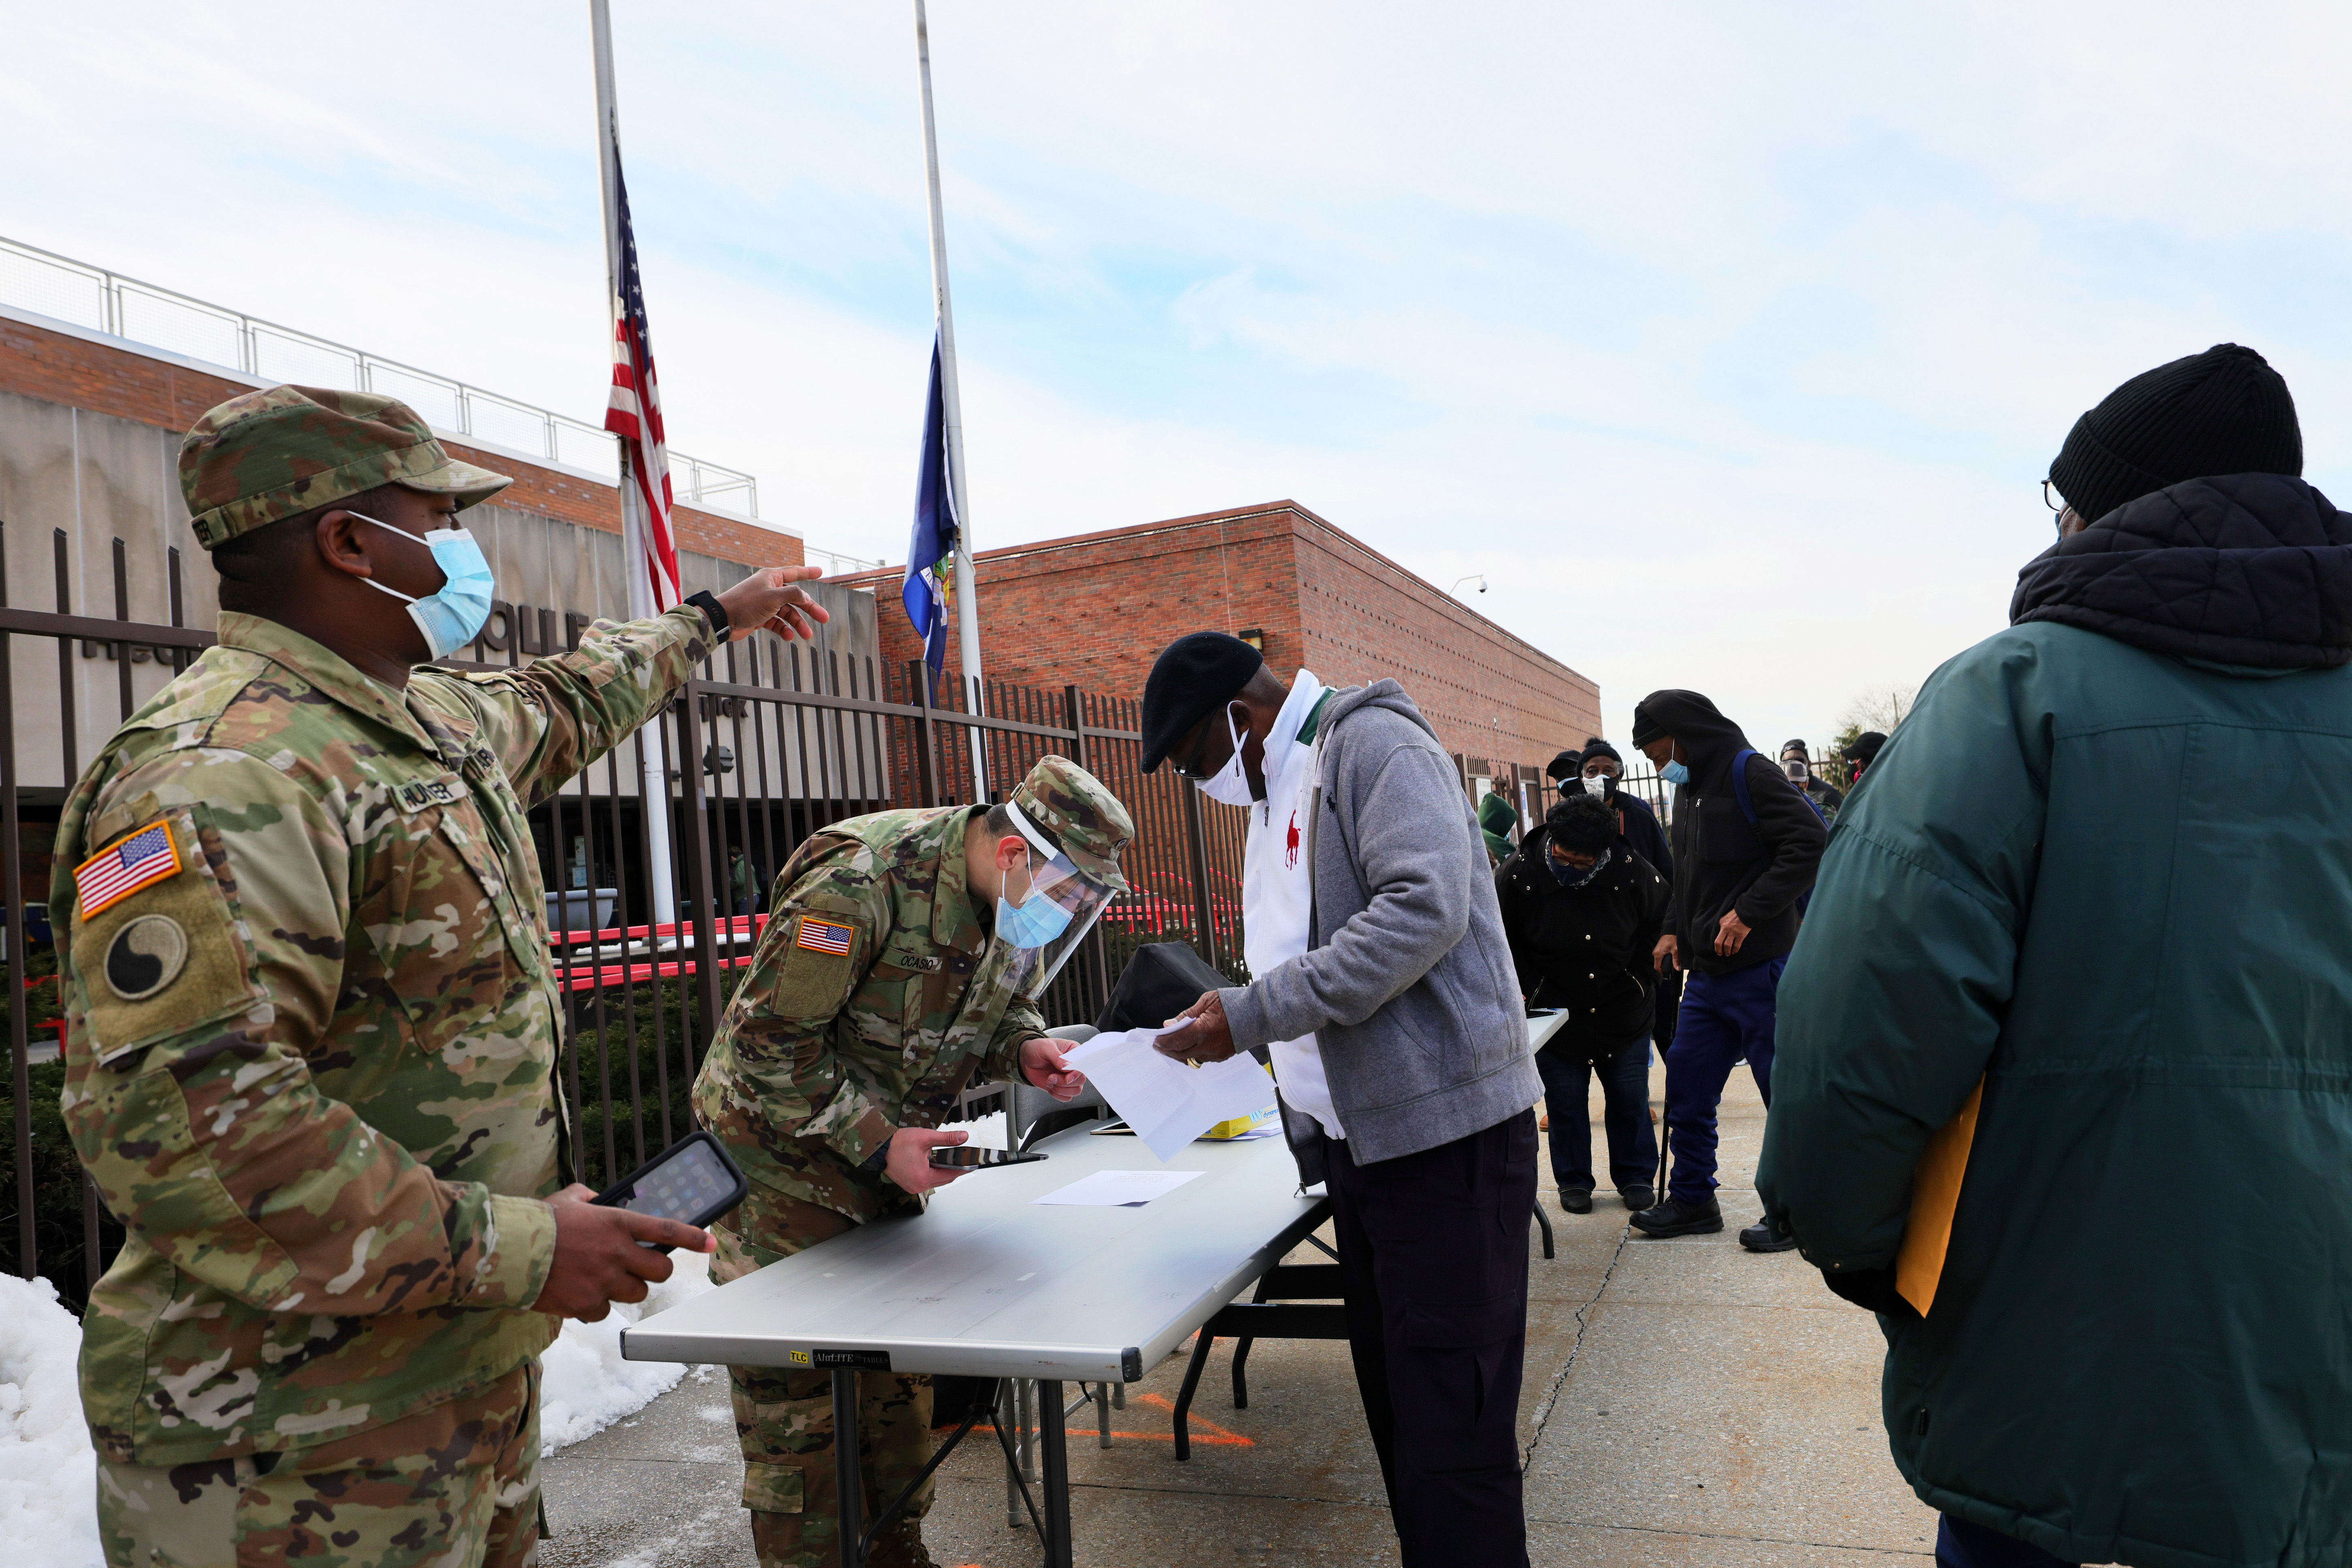 Members of the National Guard help people sign up for their Covid-19 vaccination appointments at York College in Queens, New York, on February 24.